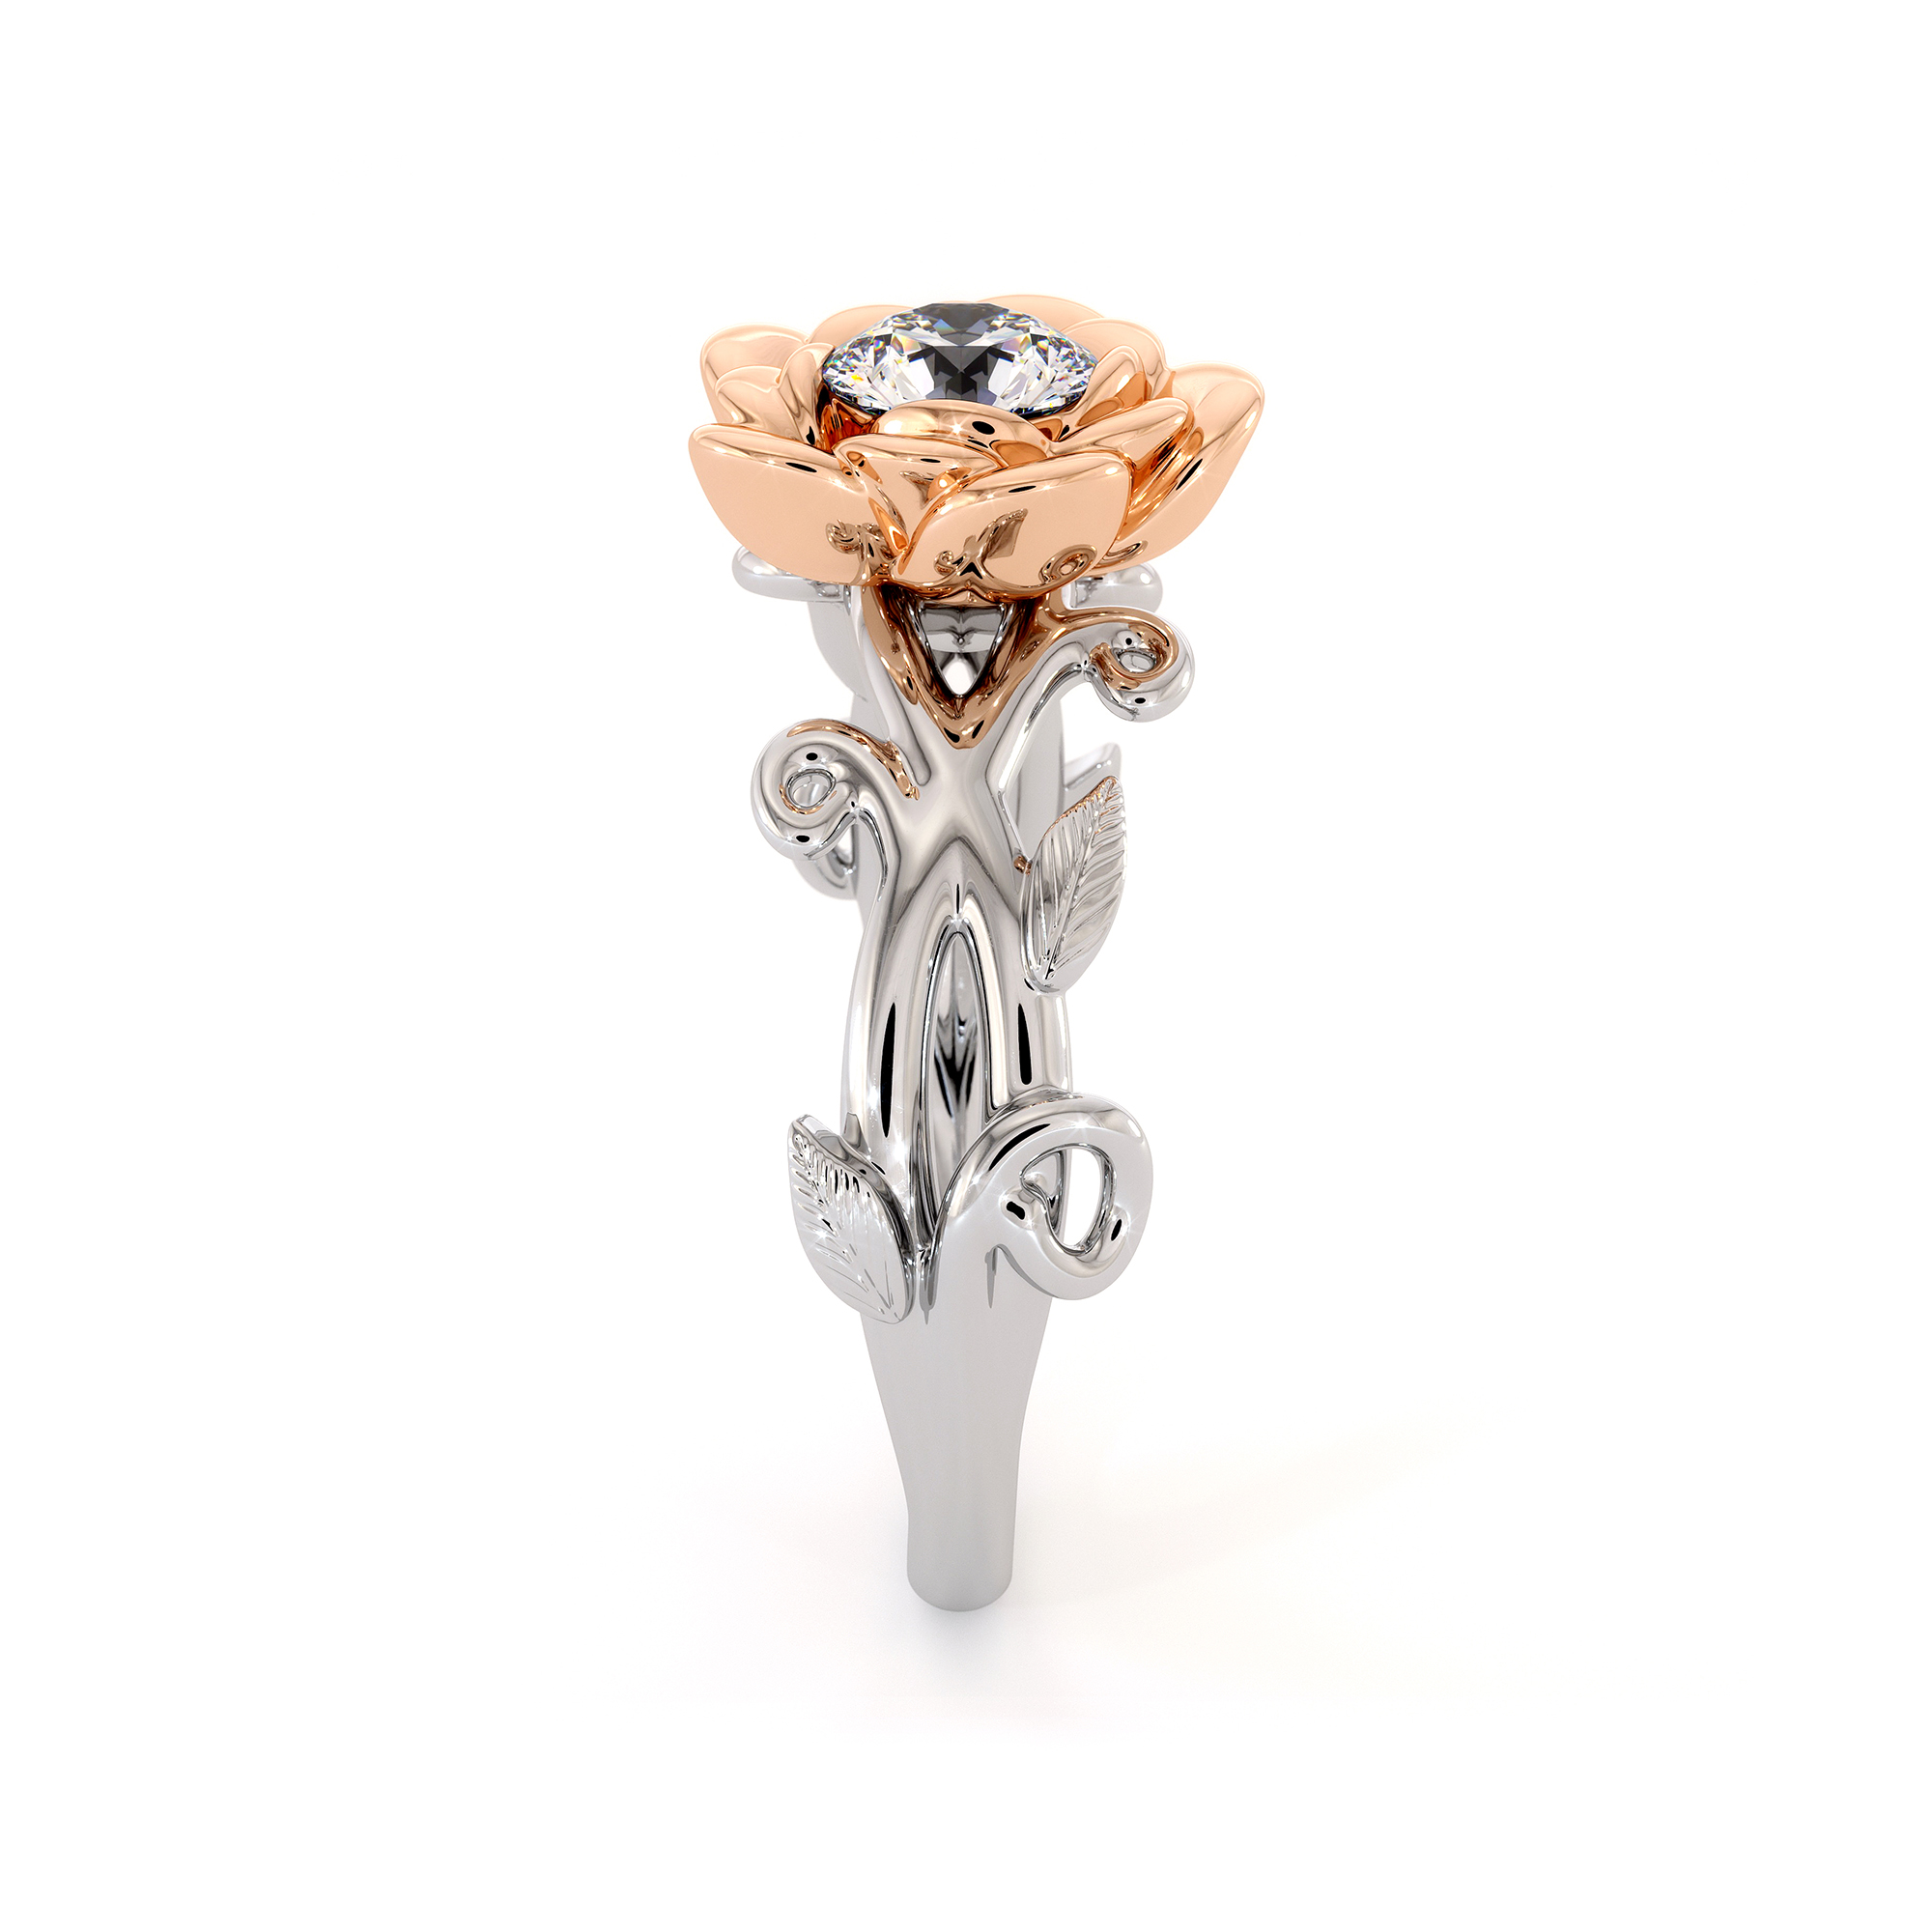 Floral Engagement Ring Handmade Lab Created Diamond Ring Rose Flower Ring White And Rose Gold Ring